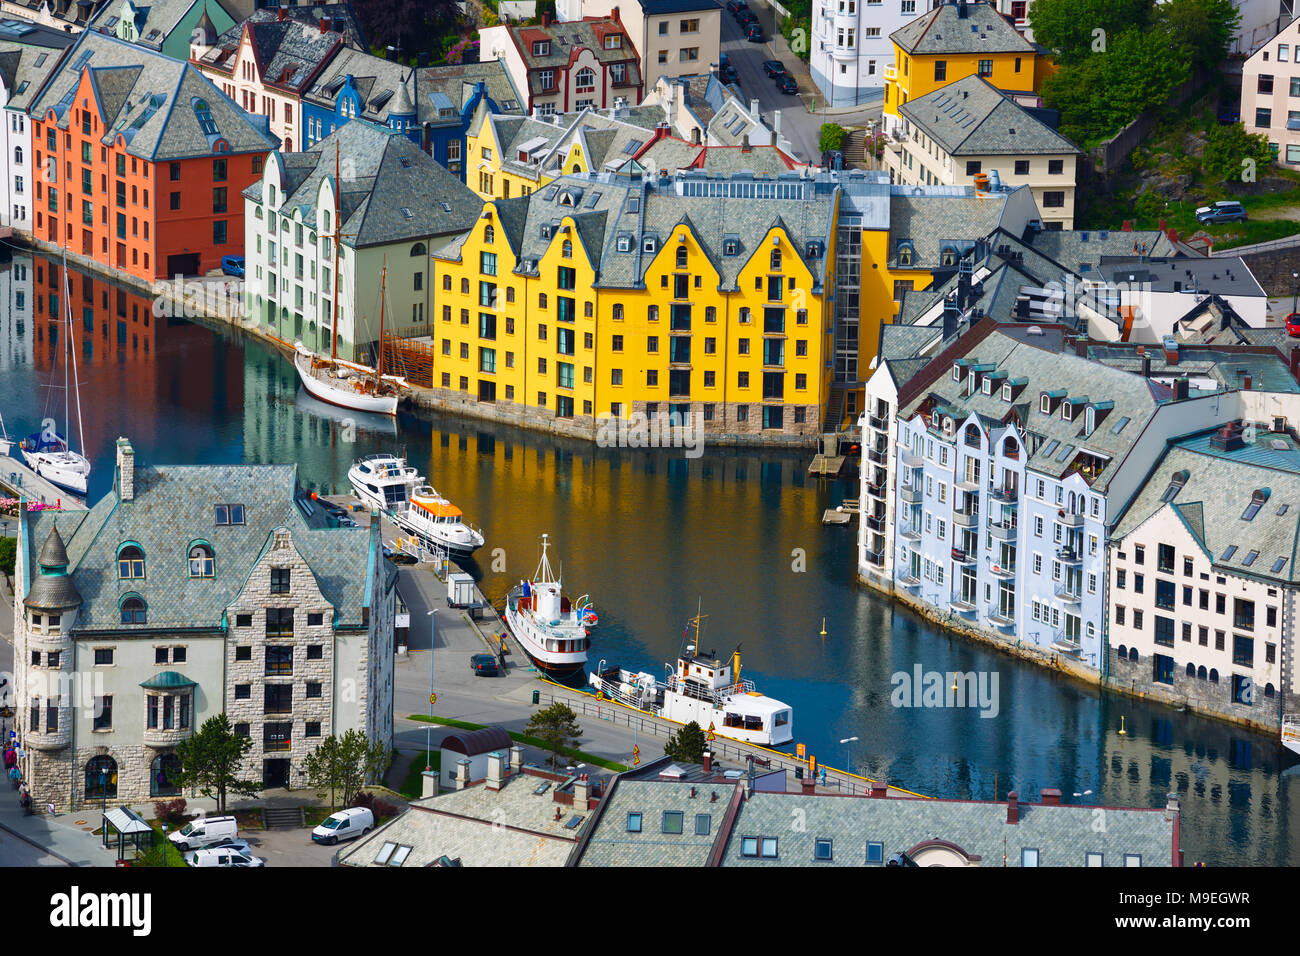 Aksla at the city of Alesund , Norway. It is a sea port, and is noted for its concentration of Art Nouveau architecture. - Stock Image